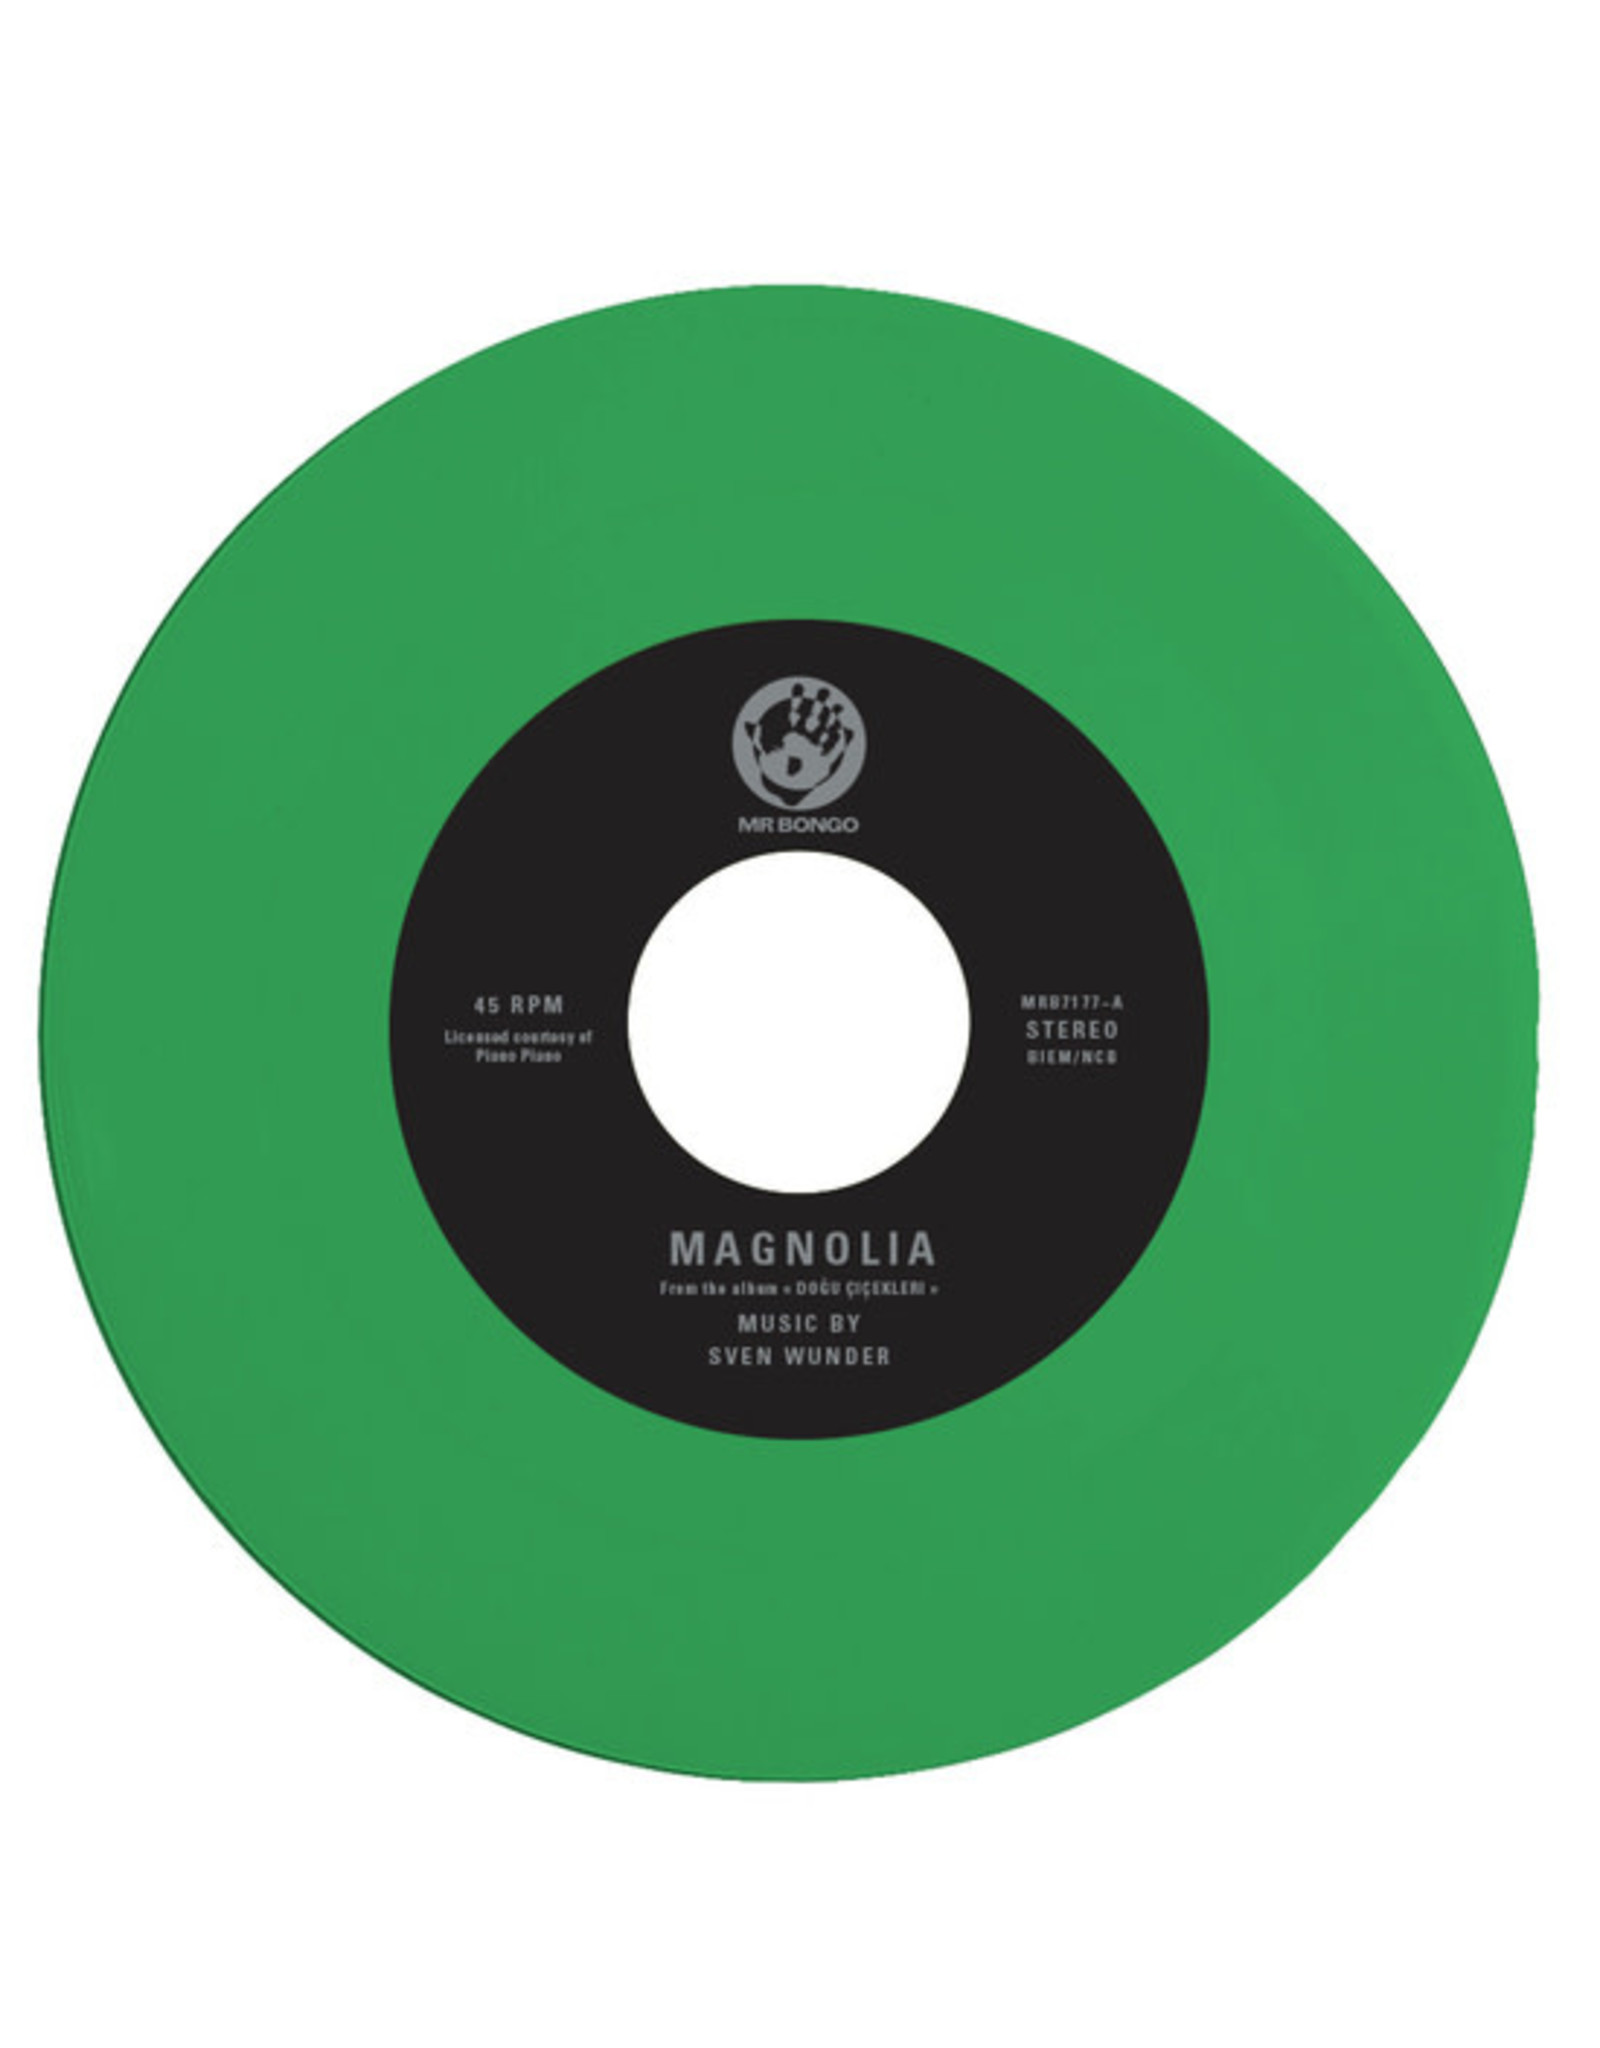 New Vinyl Sven Wunder - Magnolia b/w Lotus (Colored) 7""